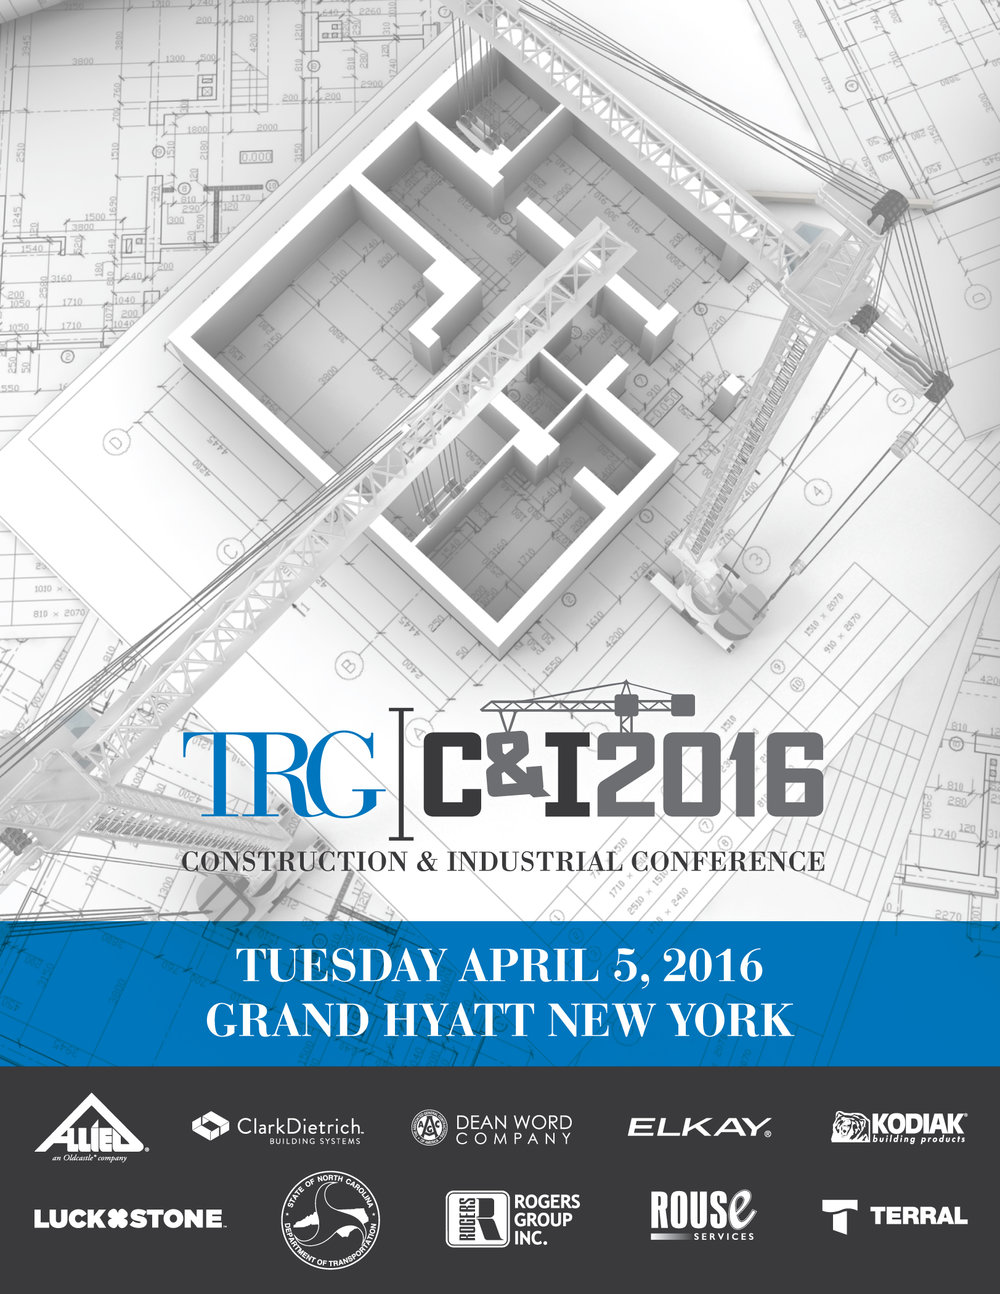 TRG_CI2016_Binder-Cover_A_FINAL.jpg